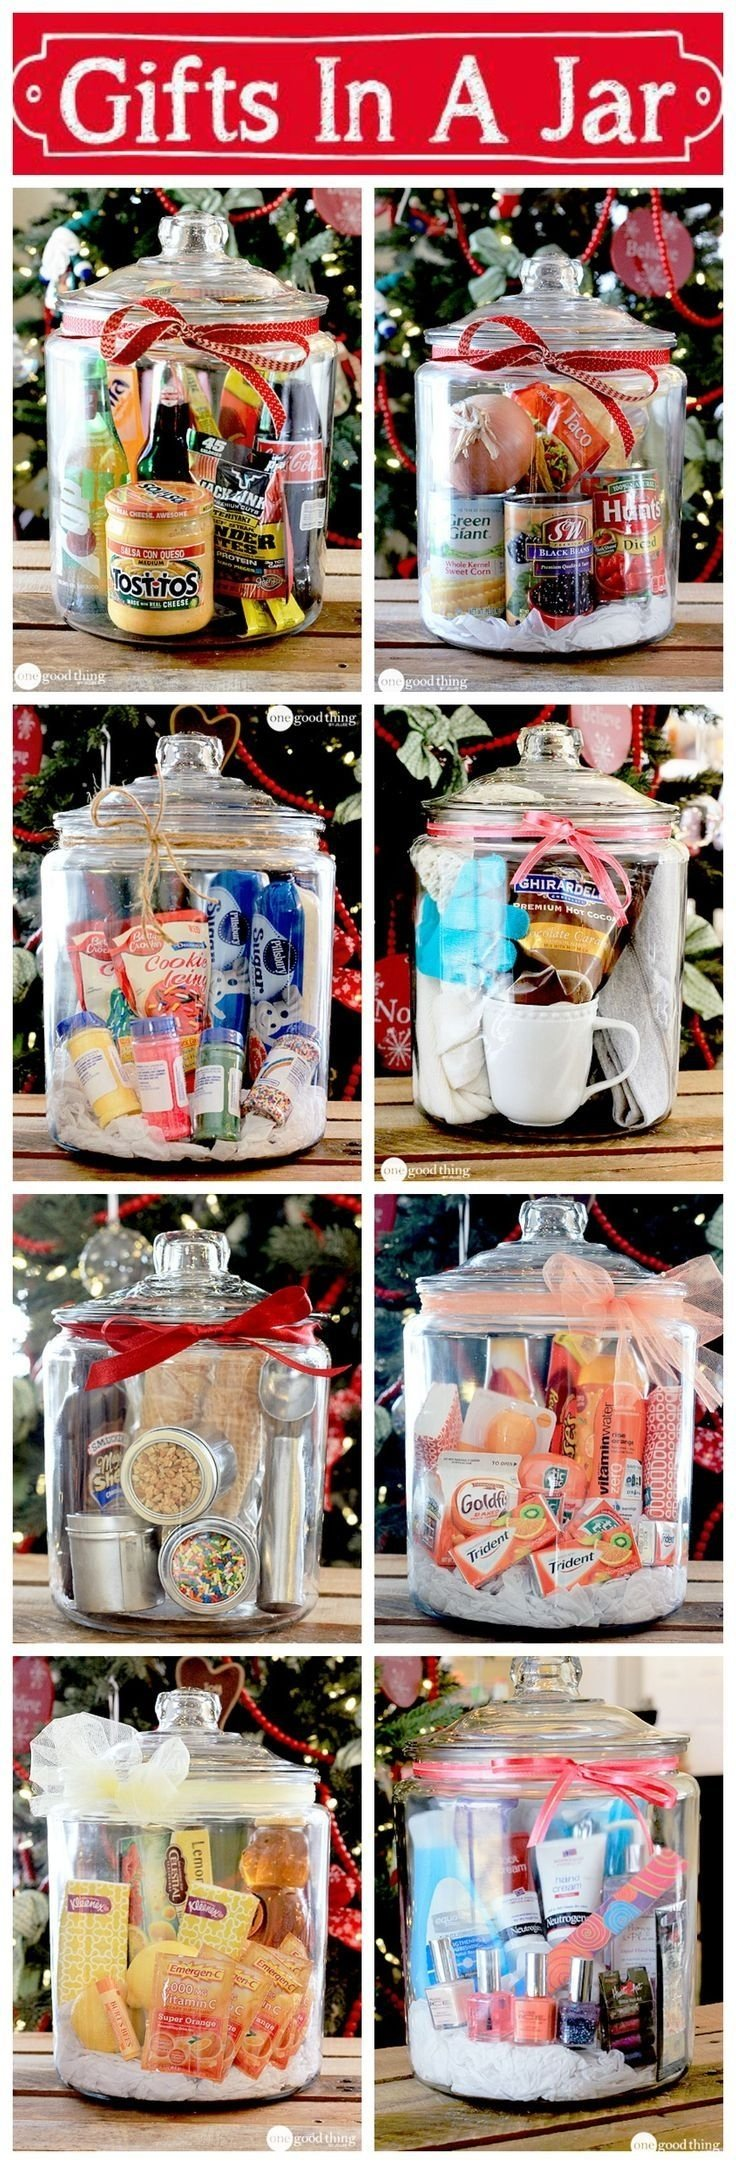 10 Best Gift Ideas For Your Boss 115 best christmas gift ideas images on pinterest christmas 2021